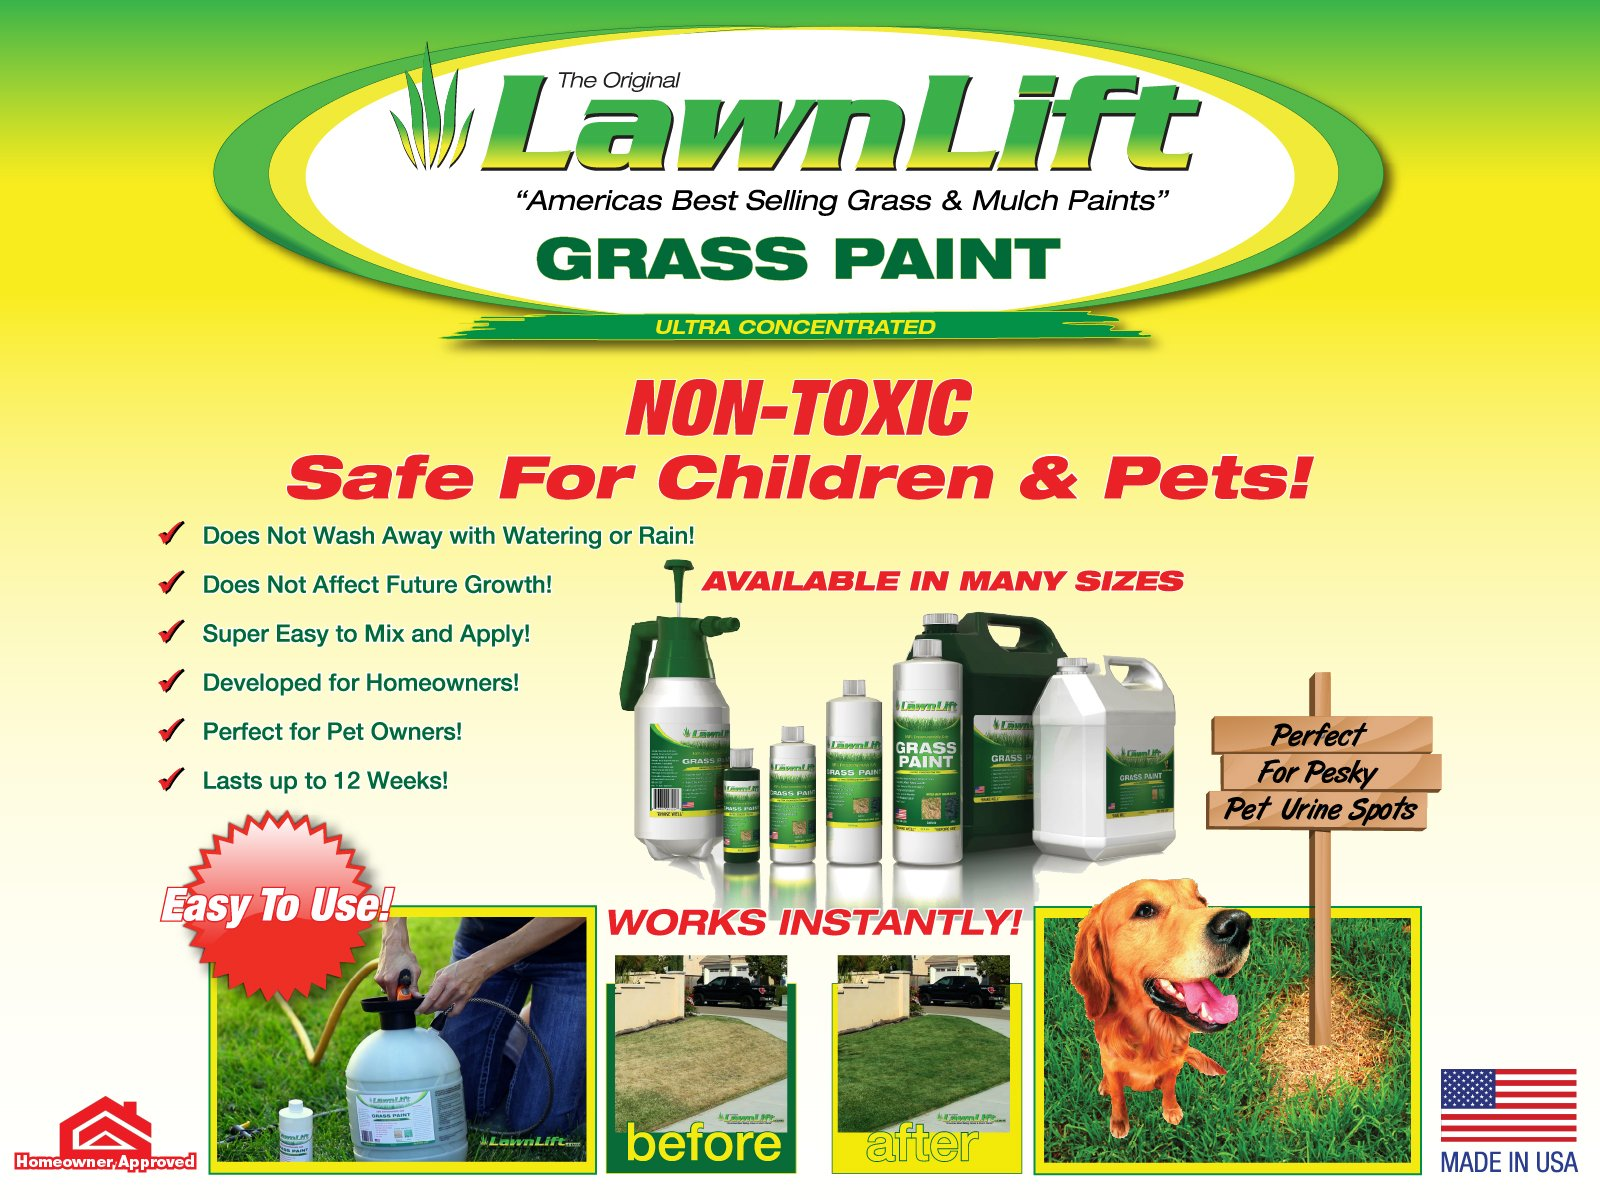 Lawnlift Ultra Concentrated (Green) Grass Paint 6 Gallon Case = 66 Gallons of Product covers 24,000 sq feet